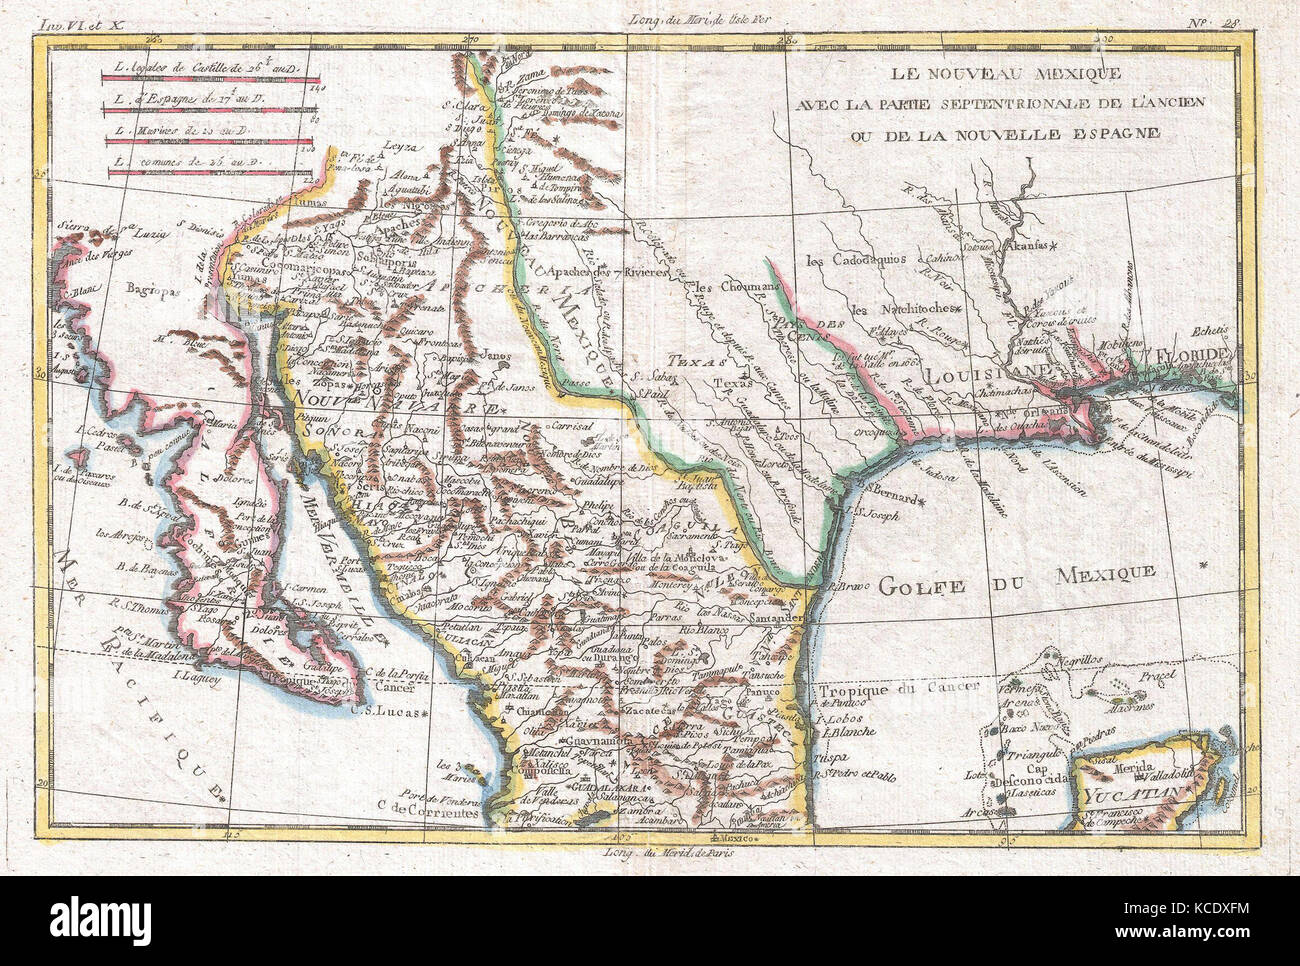 Map Of Texas Mexico.1780 Raynal And Bonne Map Of Mexico And Texas Rigobert Bonne 1727